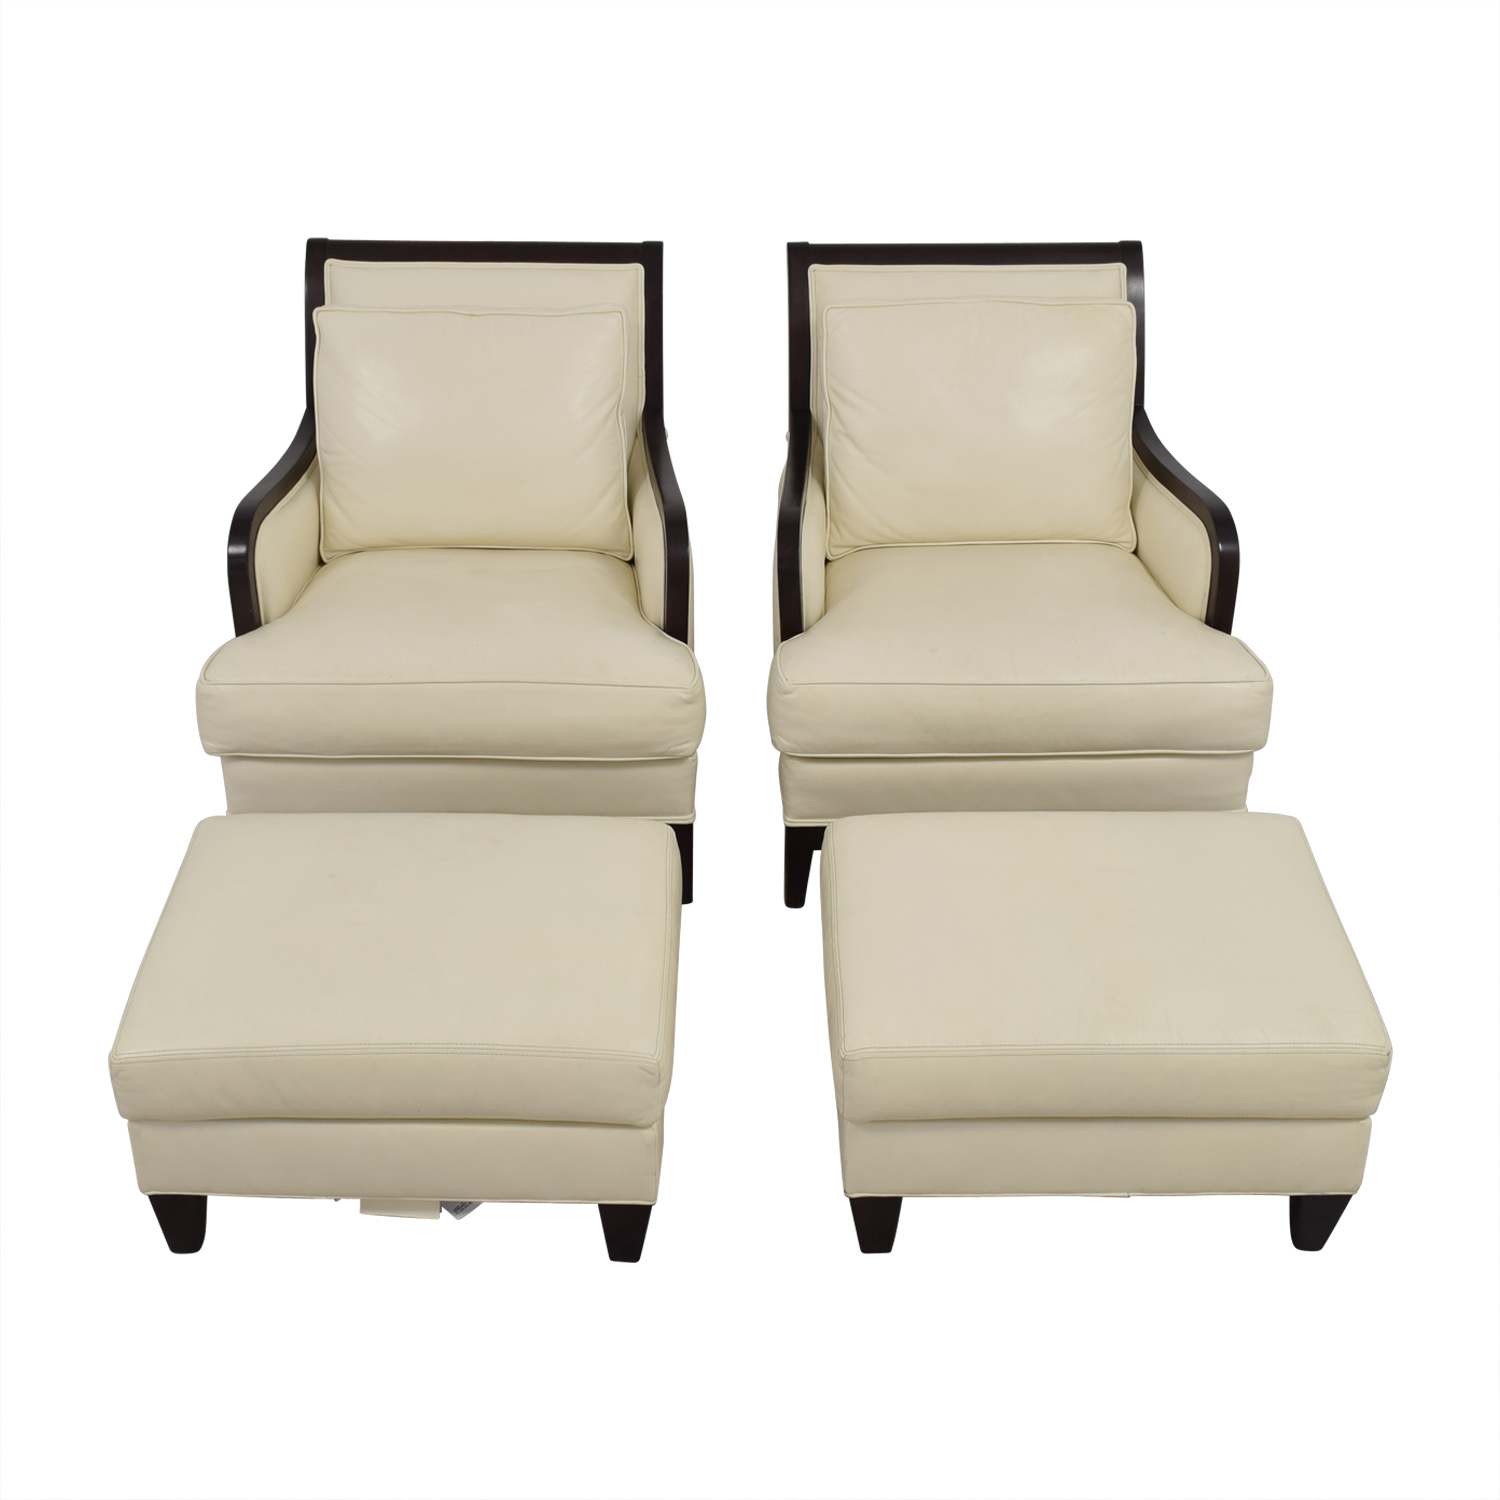 ... Buy Ethan Allen Palma Ivory Leather Chairs With Ottomans Ethan Allen ...